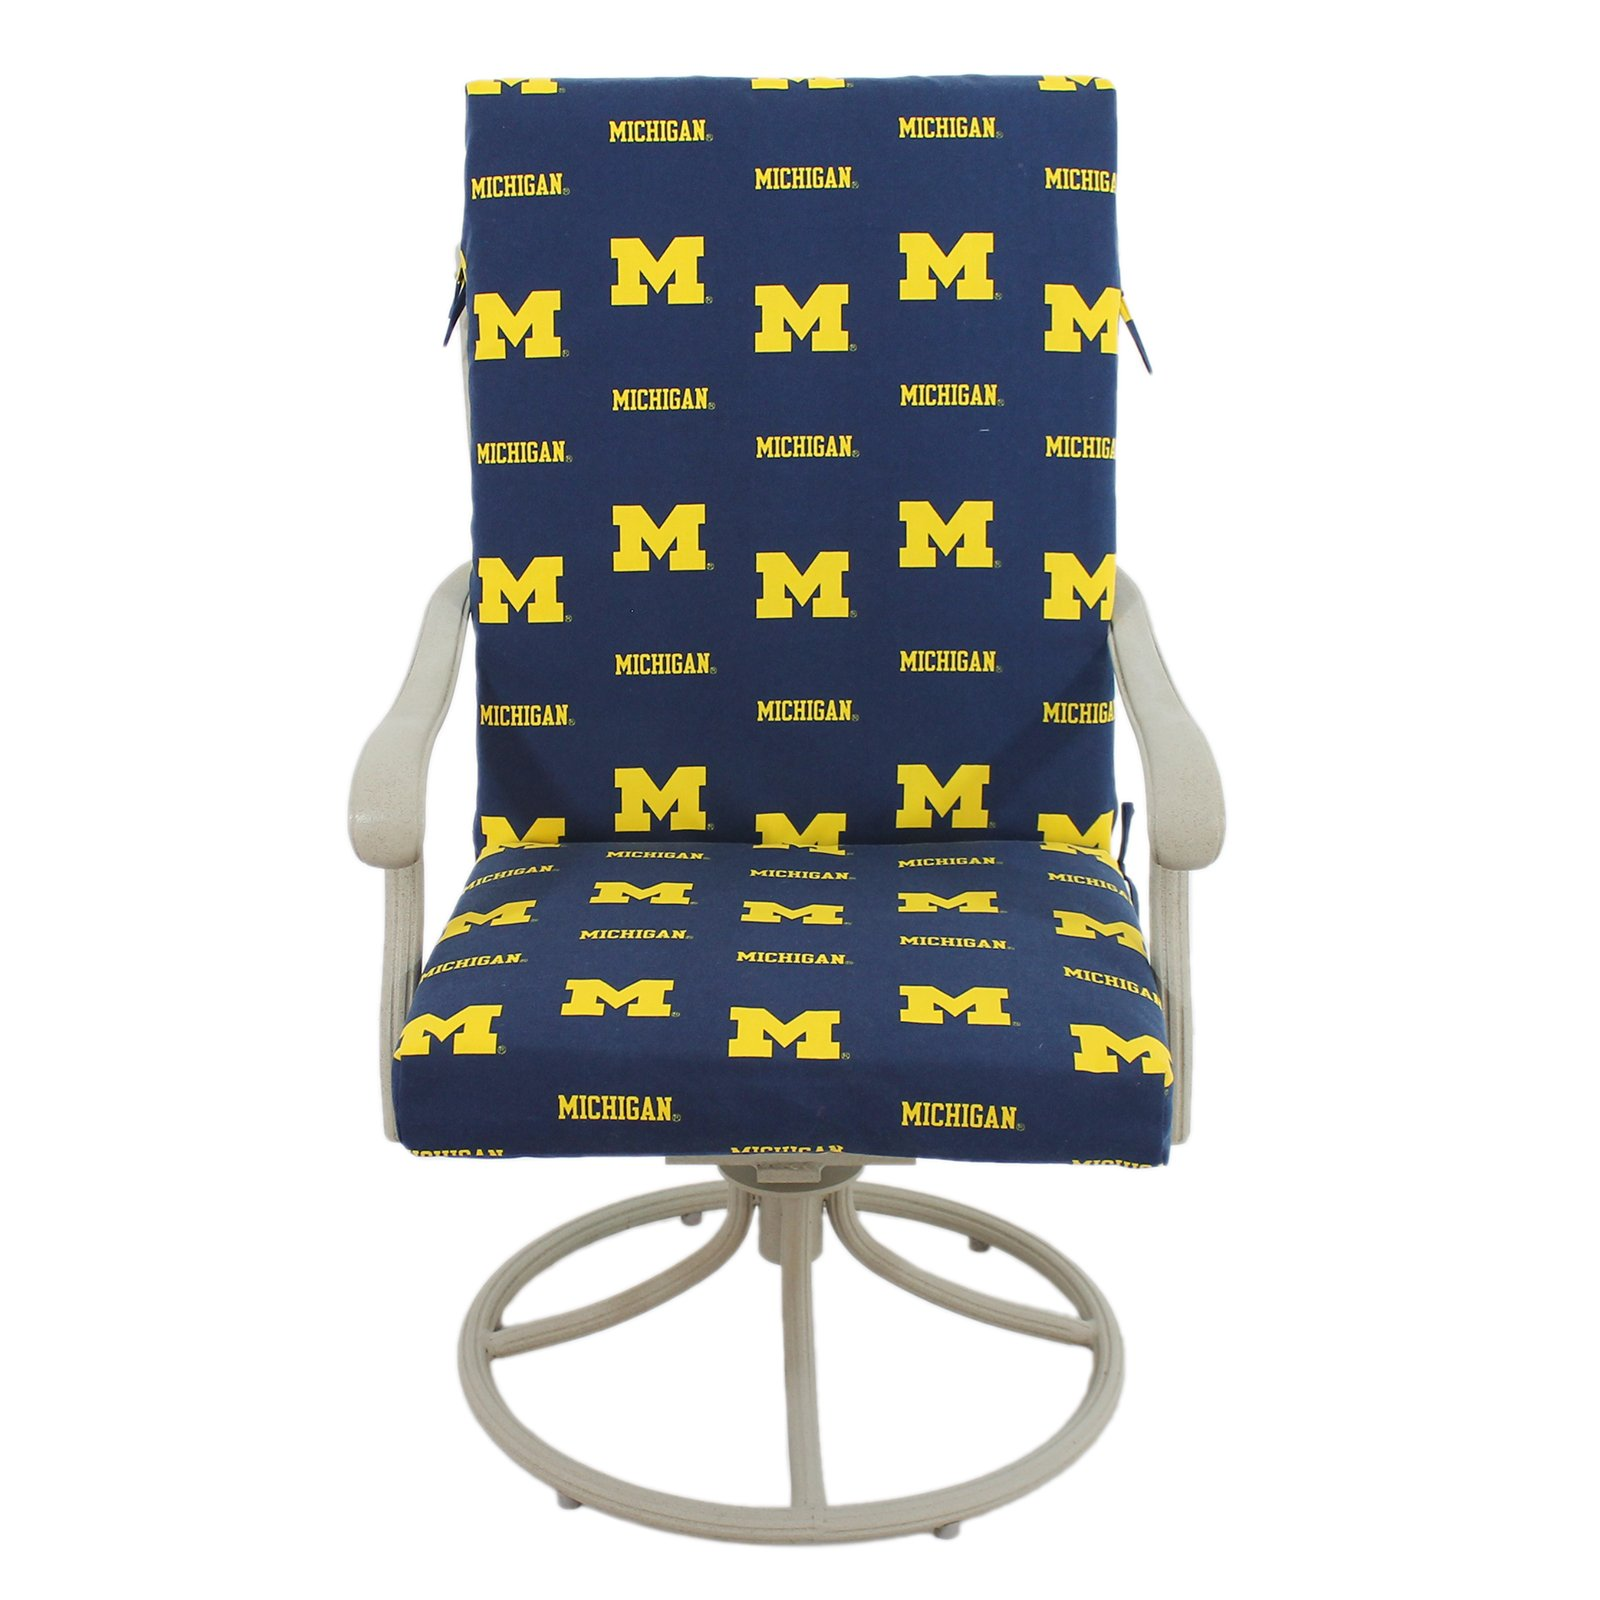 College Covers Michigan Wolverines 2 Piece Chair Cushion